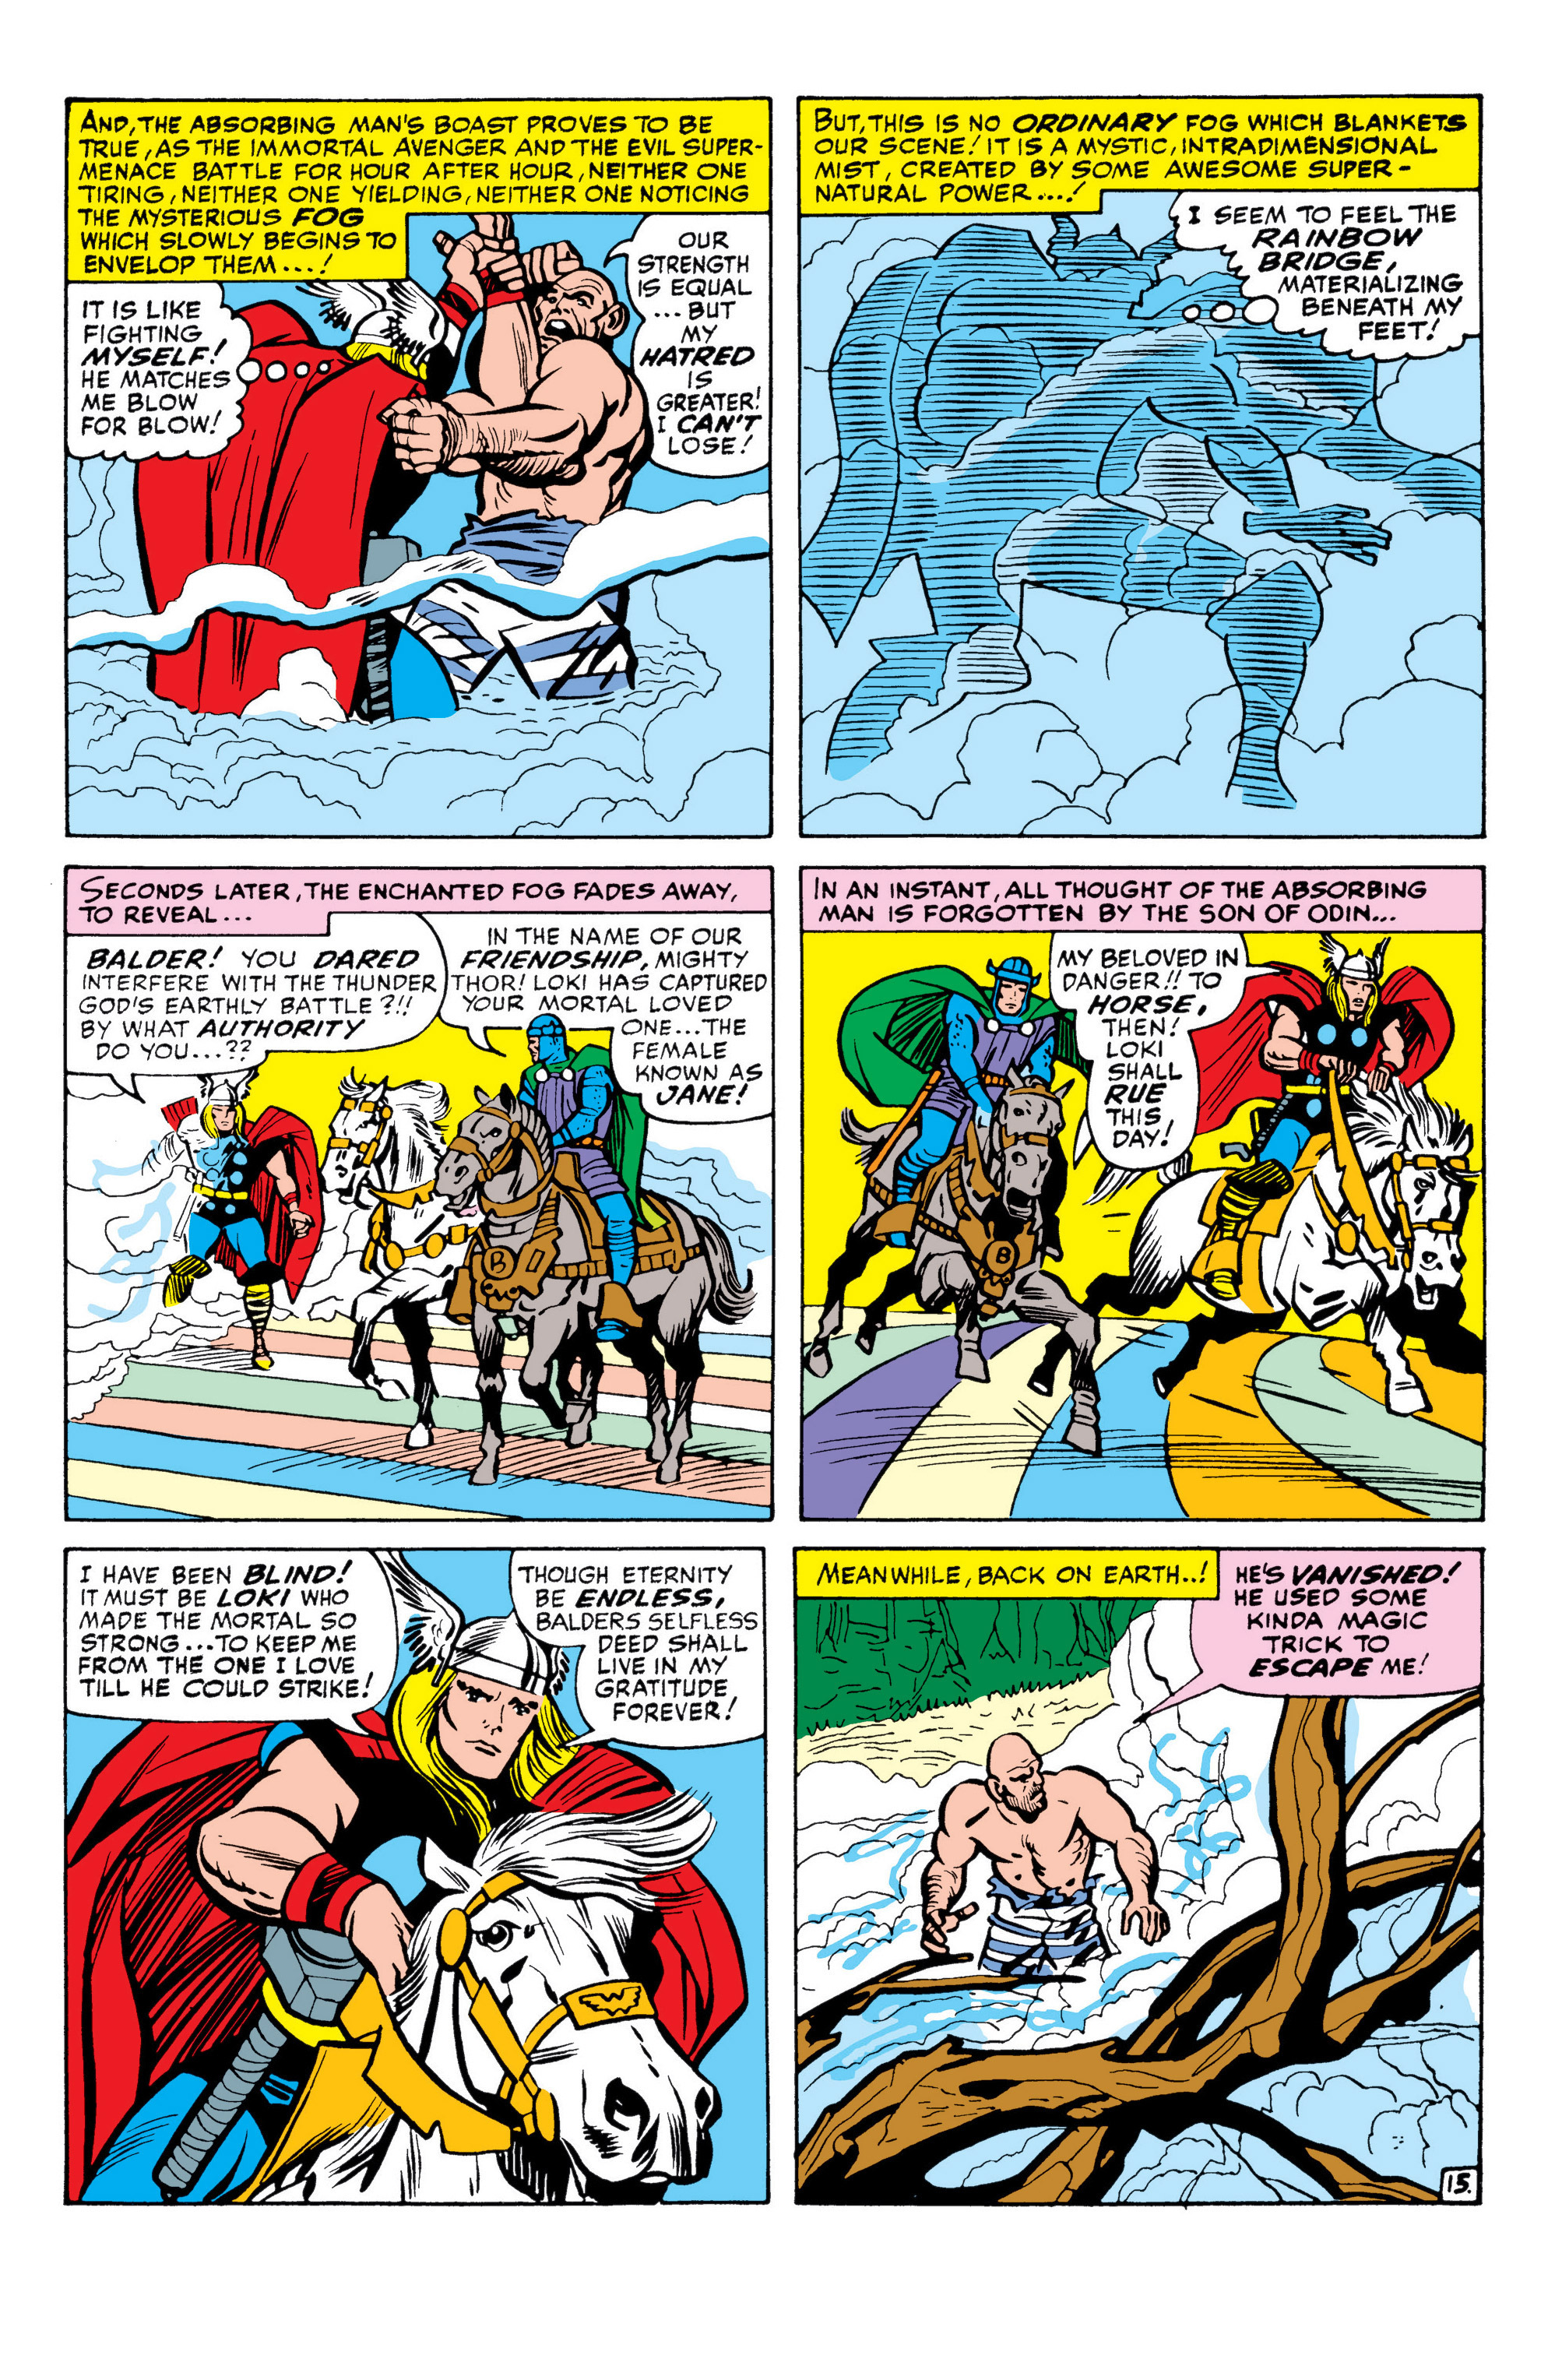 Thor Epic系列:当Titans Clash(2016): Chapter 1 - Page Thor Epic系列:当Titans Clash(2016)